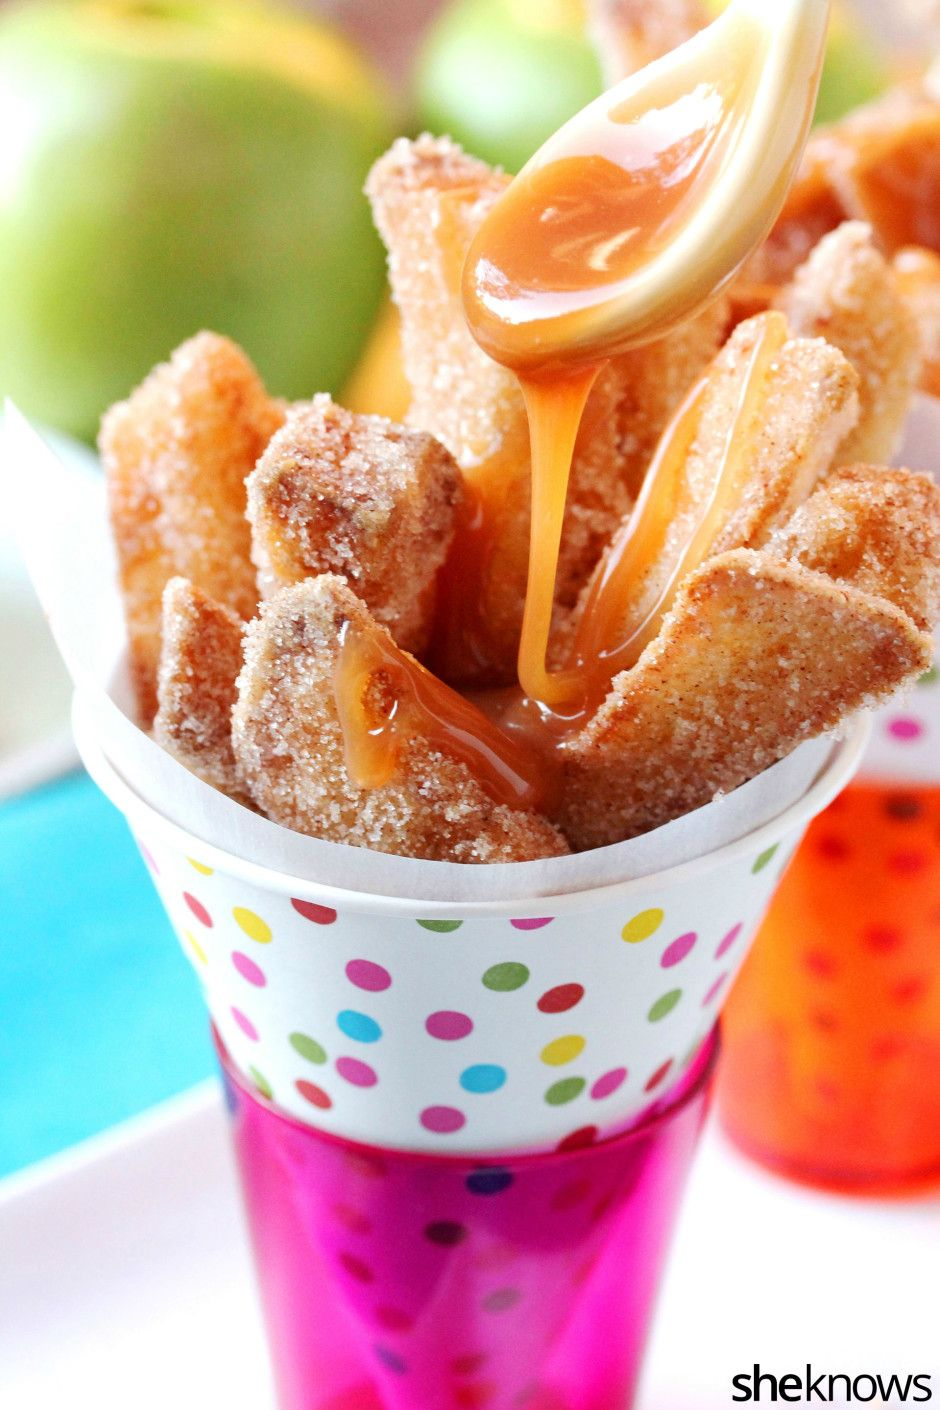 Crispy, crunchy apple fries are the tastiest way to eat your daily serving of fruit